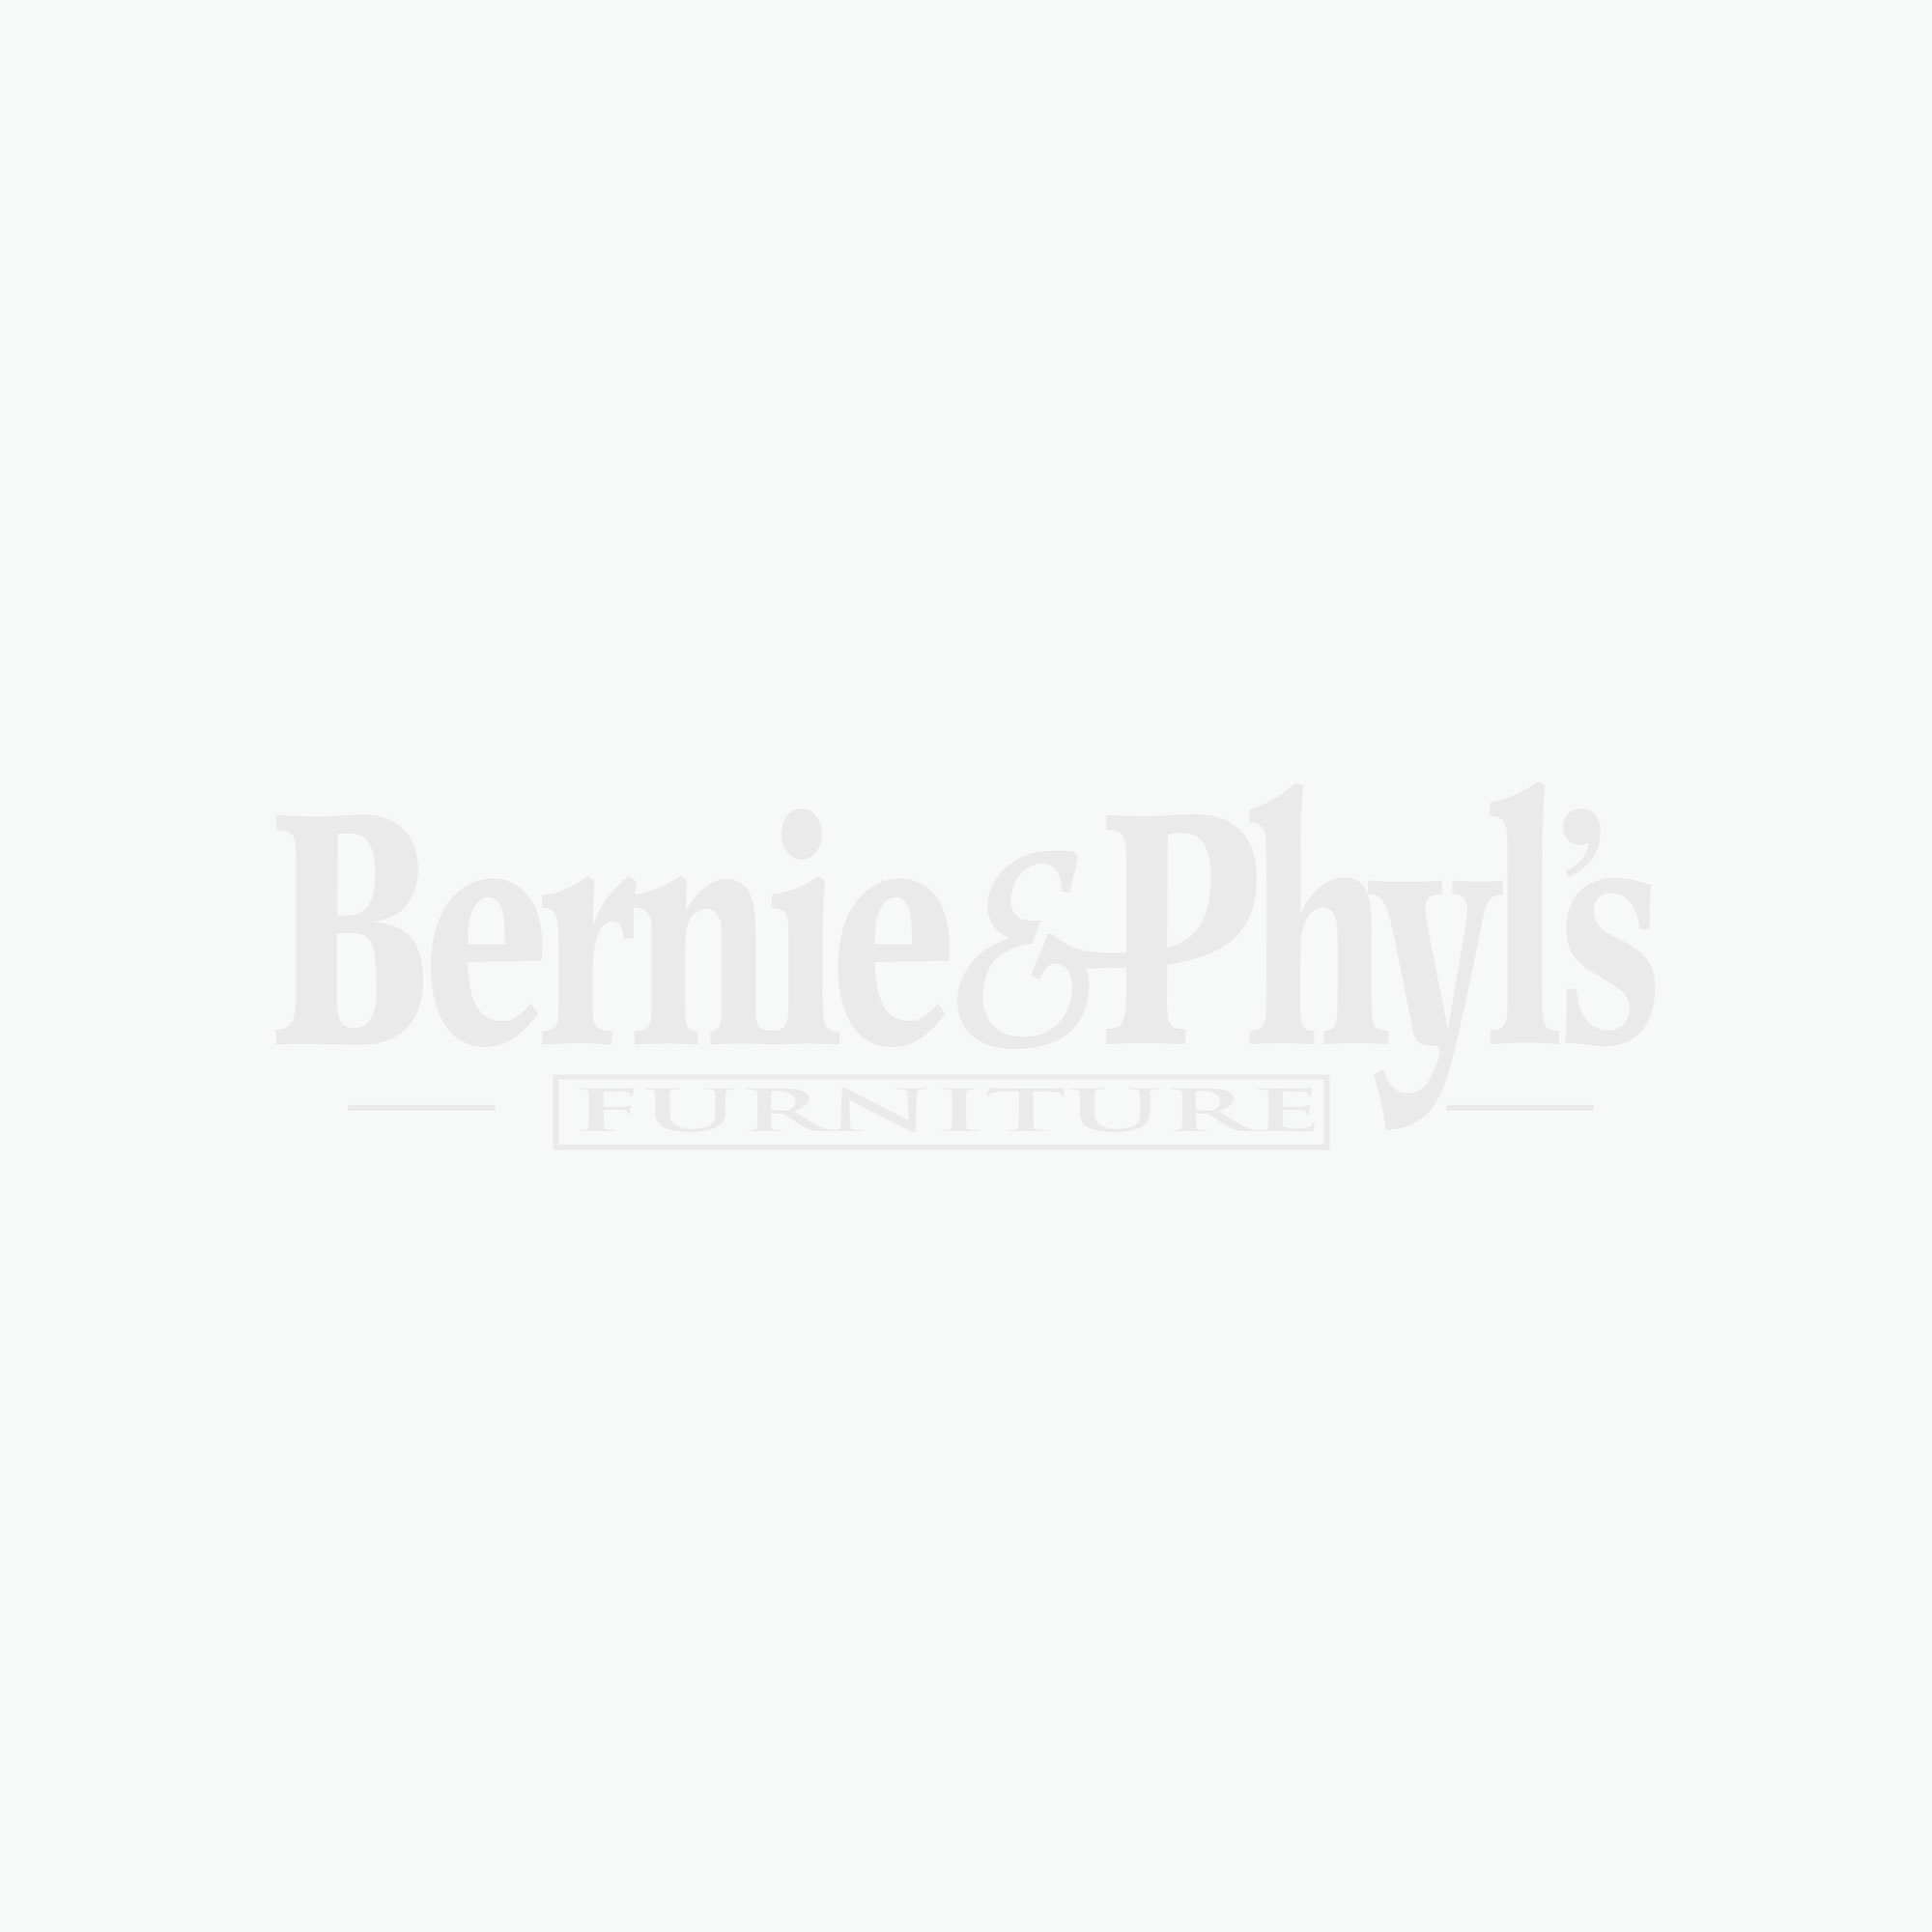 Gilmore Shabby Chic Wall Mount Jewelry Mirror - (Set of 1) - JS5532 - by Southern Enterprises